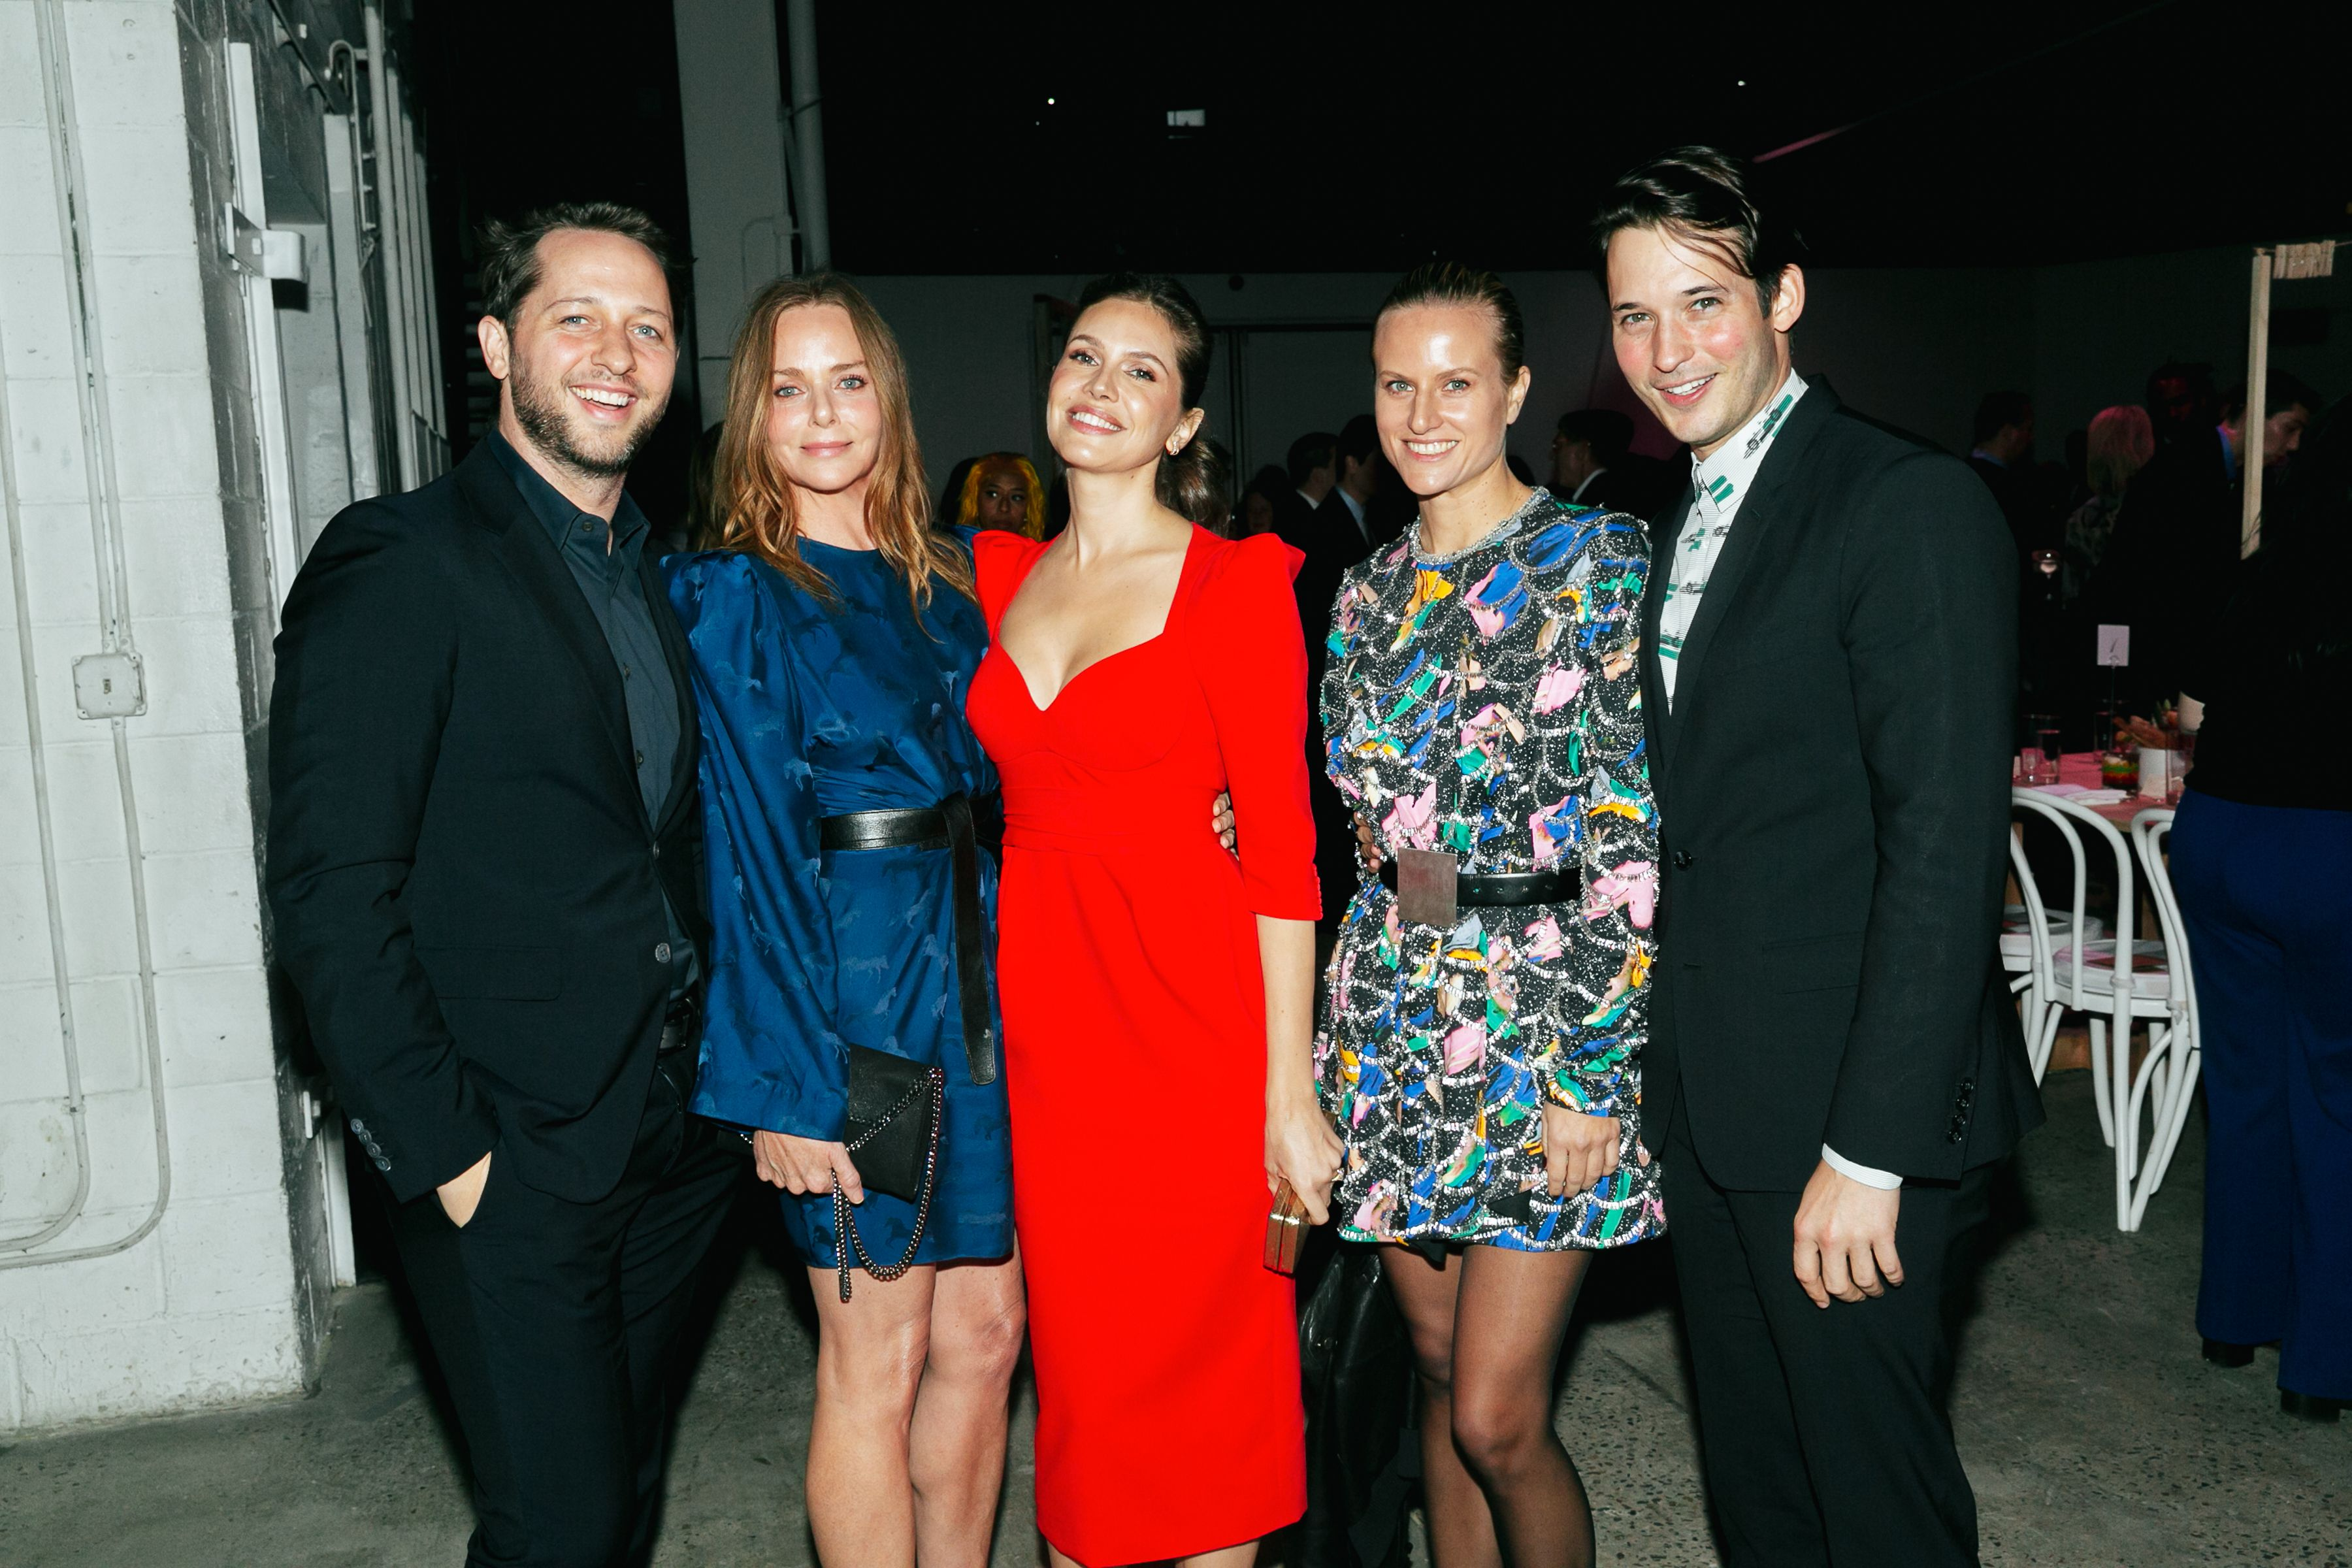 What Happened at Performa's Opening Night Gala?